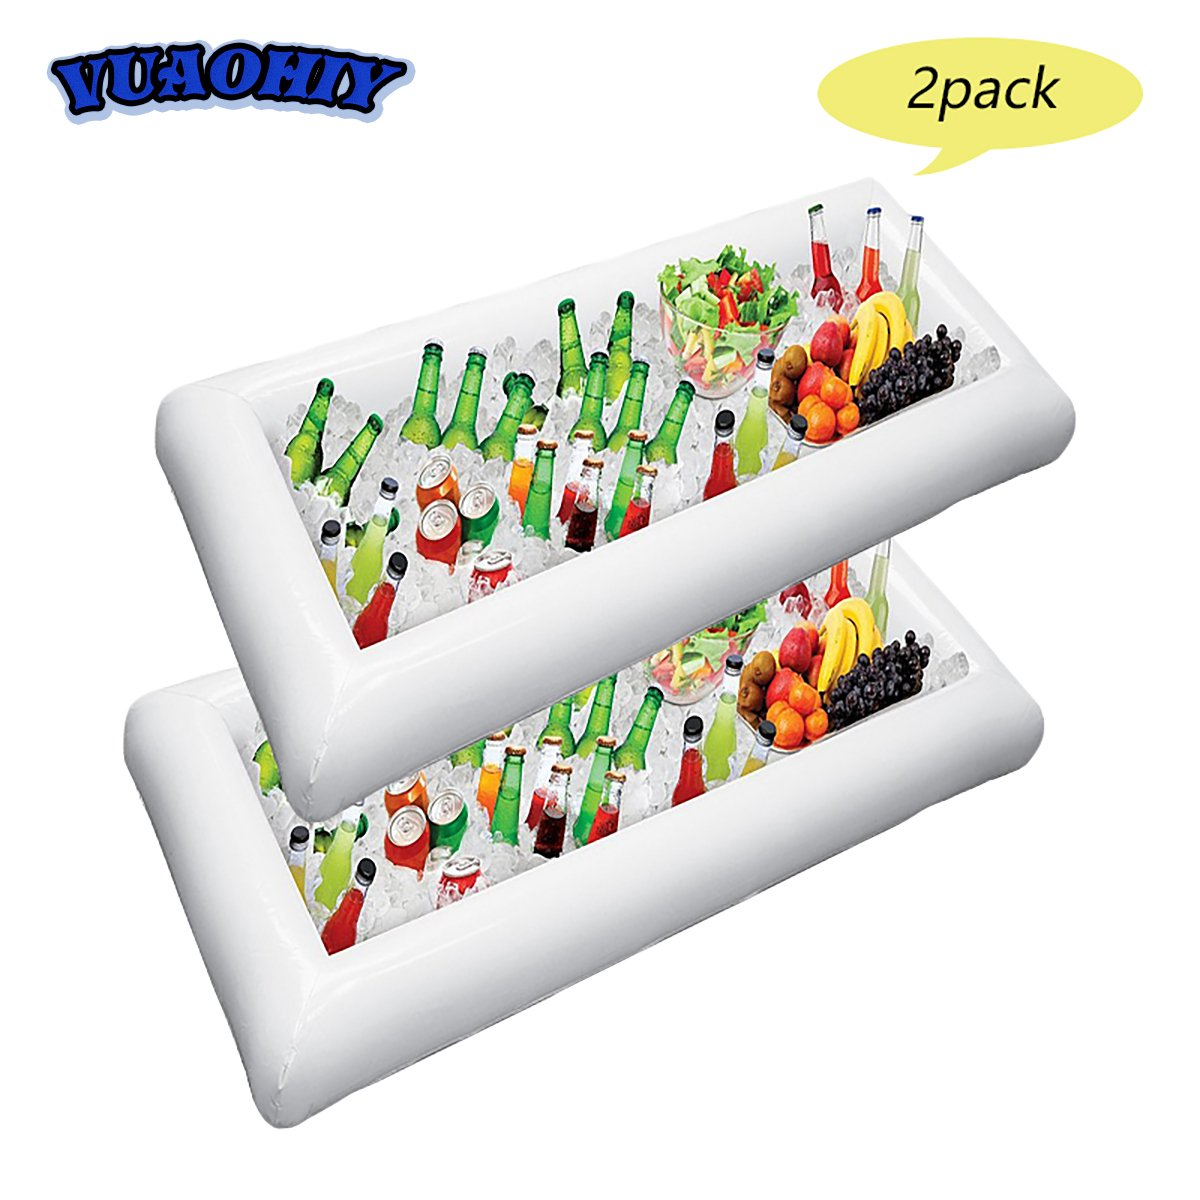 Inflatable Serving Salad Bar Tray Food Drink Containers Holder for BBQ Picnic Pool Party Buffet Luau Cooler with drain plug (2 pack)